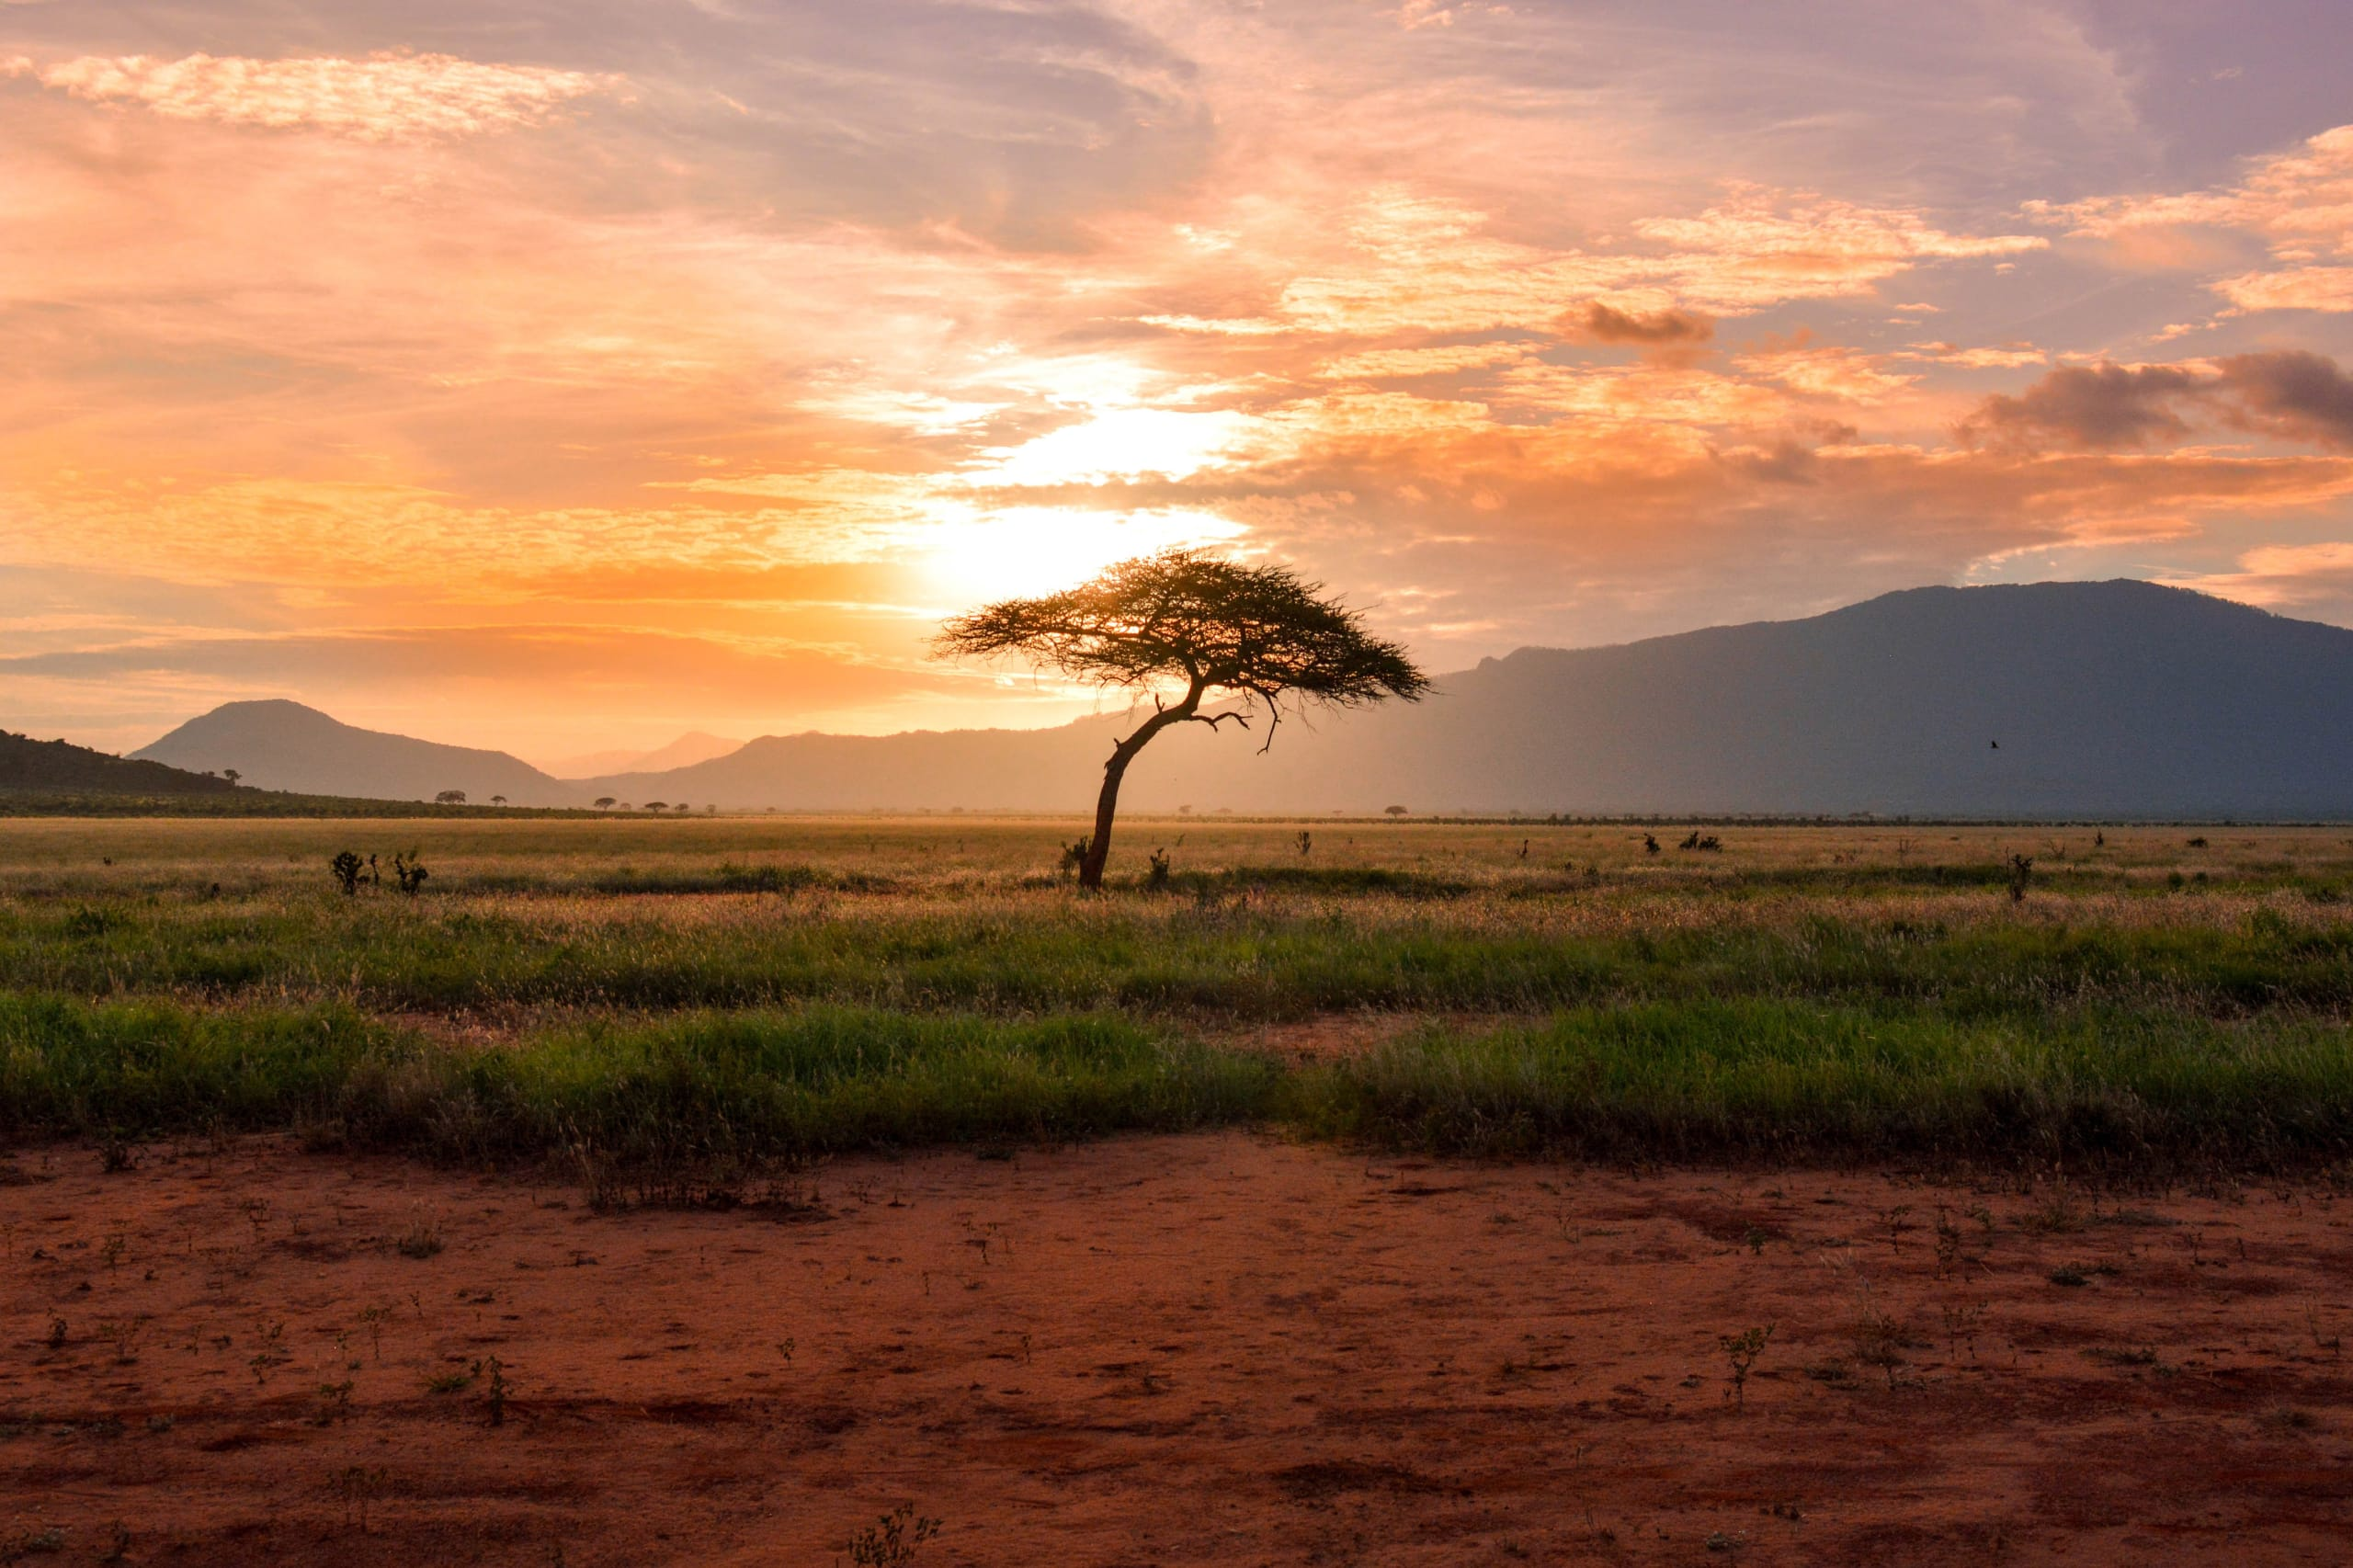 Lone tree in the Serengeti in front of a sunset behind mountain range.